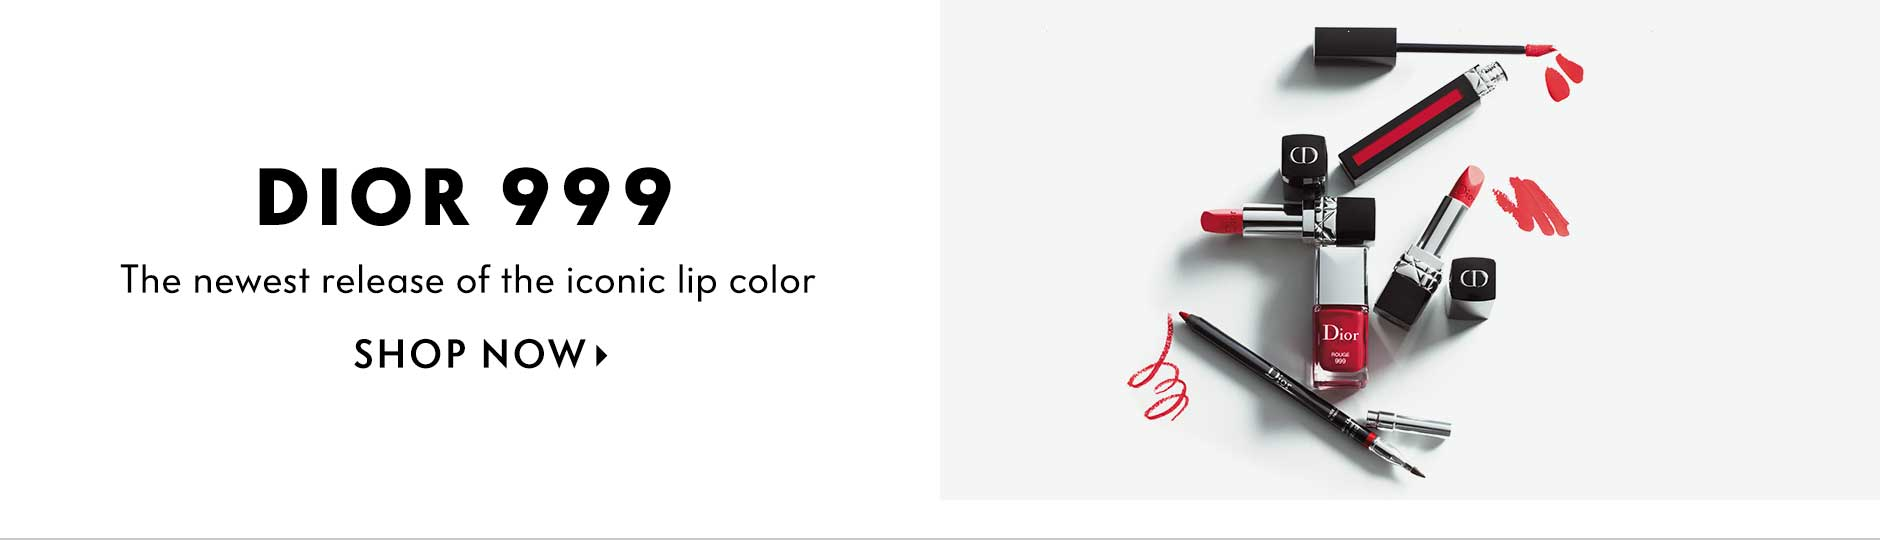 Dior 999 the newest release of the iconic lip color